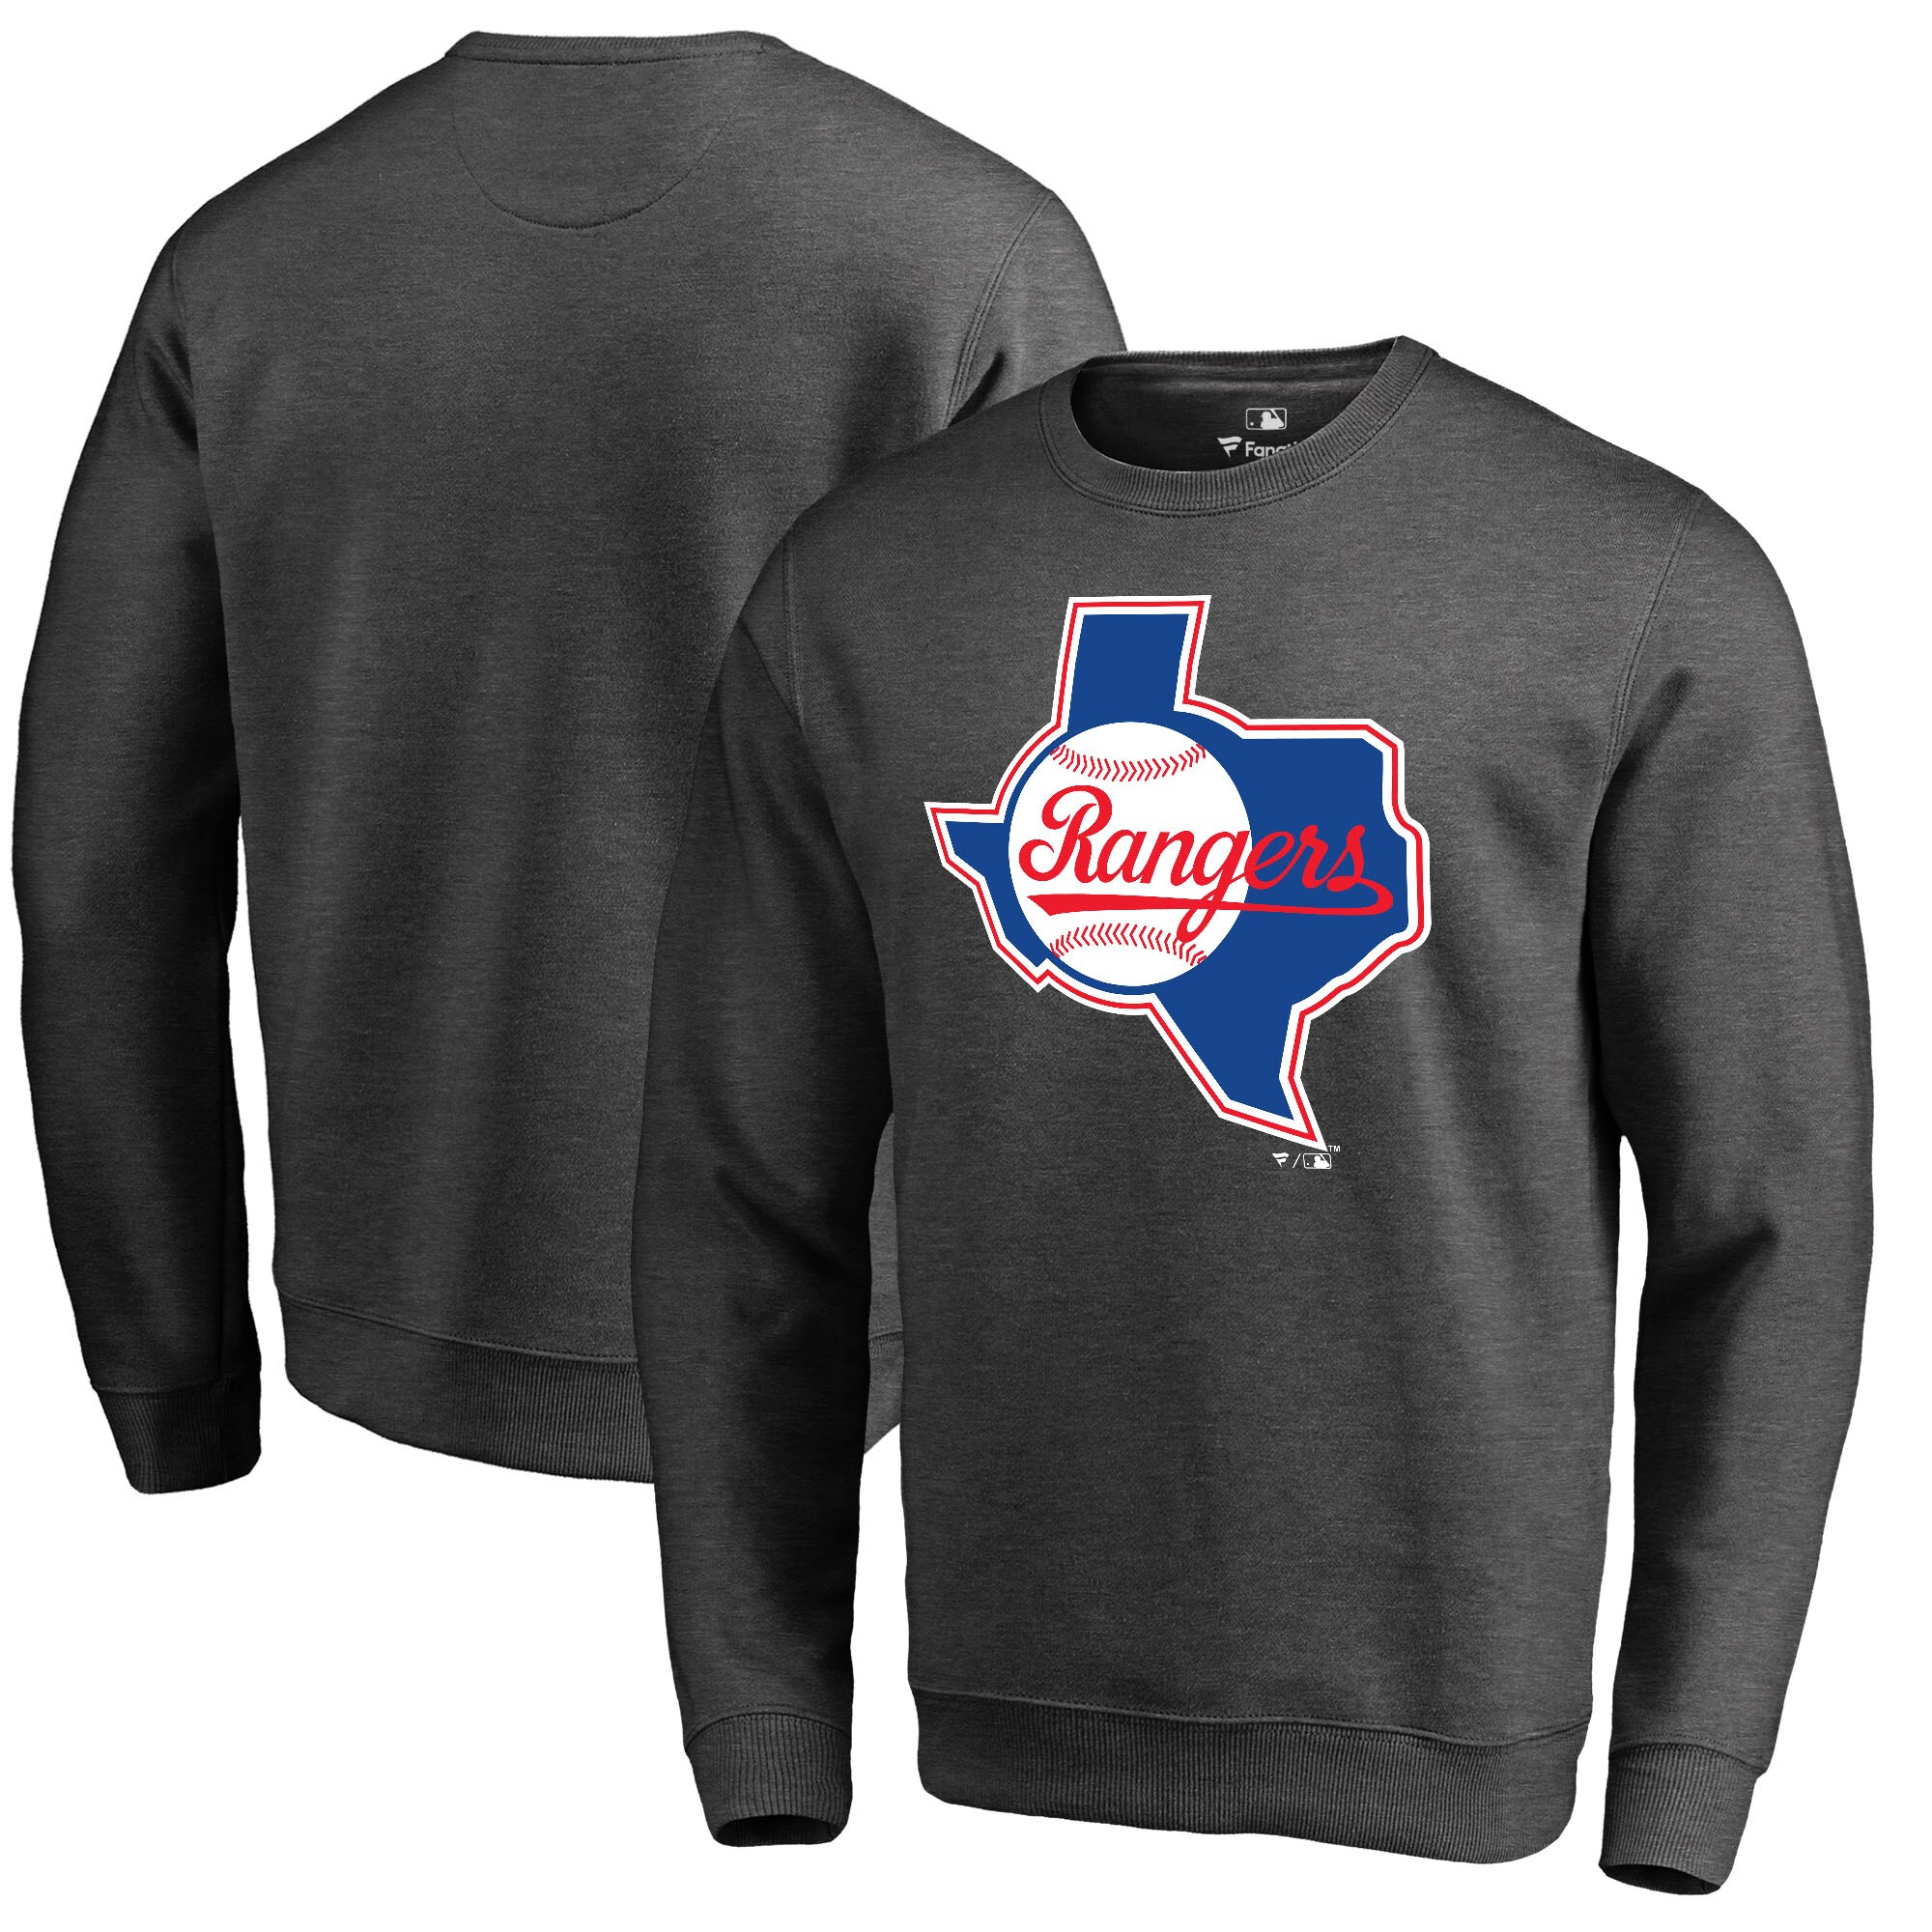 Texas Rangers Fanatics Branded Cooperstown Collection Huntington Sweatshirt - Heathered Gray